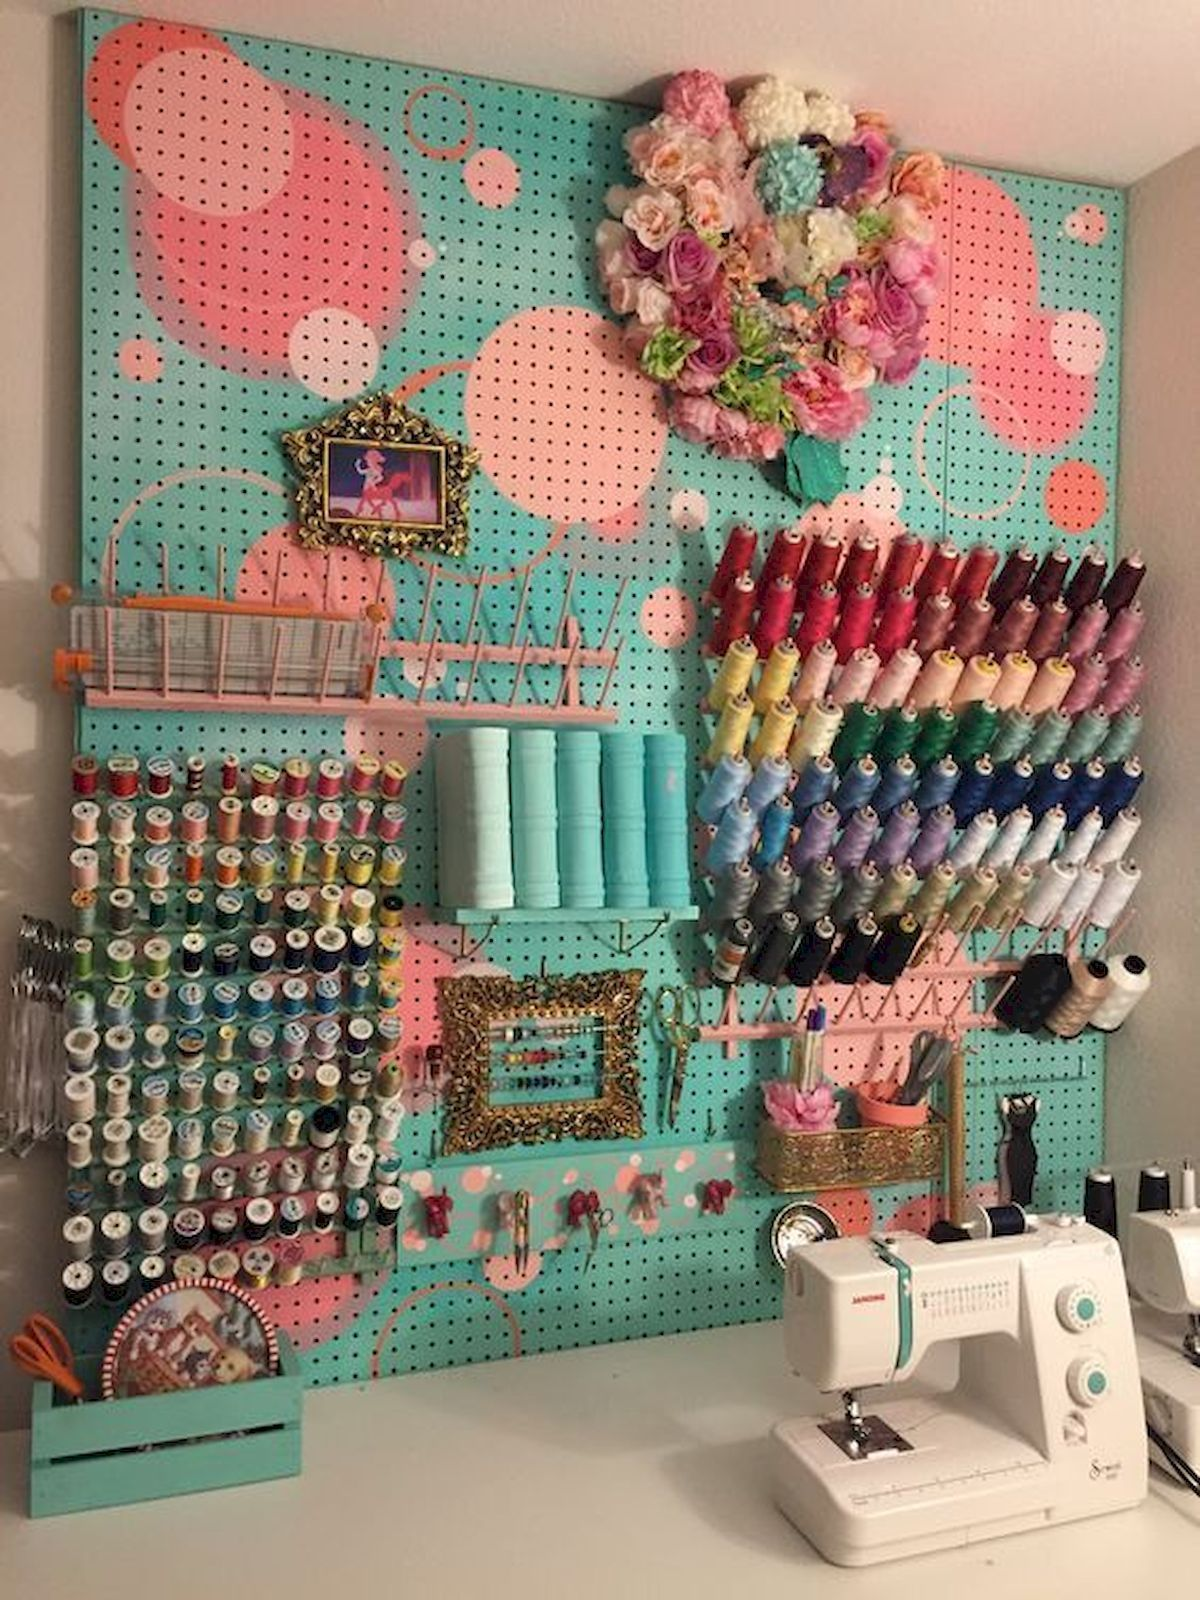 60 Most Popular Art Studio Organization Ideas and Decor (42 is part of Sewing rooms, Craft room design, Craft room office, Craft room storage, Sewing room organization, Craft room organization - 60 Most Popular Art Studio Organization Ideas and Decor (42)